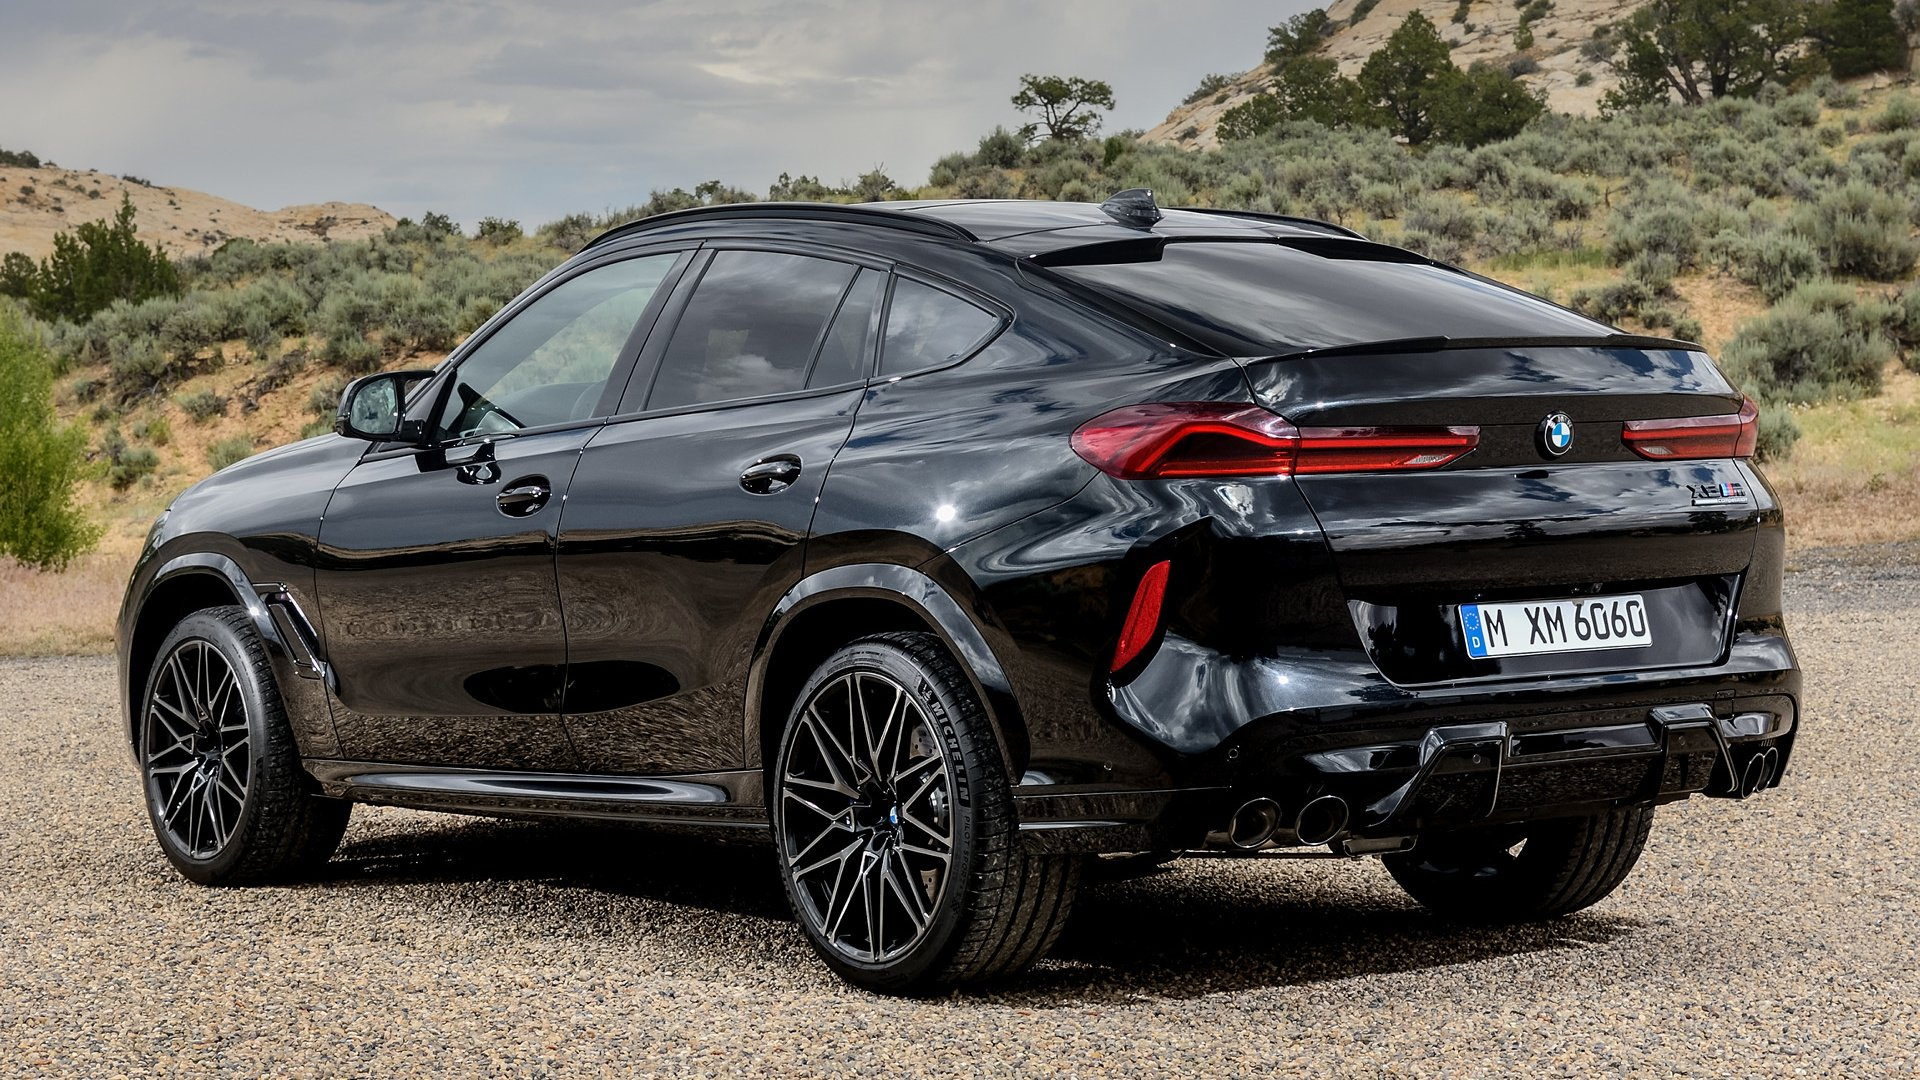 2019 Bmw X6 M Competition Papel De Parede Hd Plano De Fundo 1920x1080 Id 1044108 Wallpaper Abyss